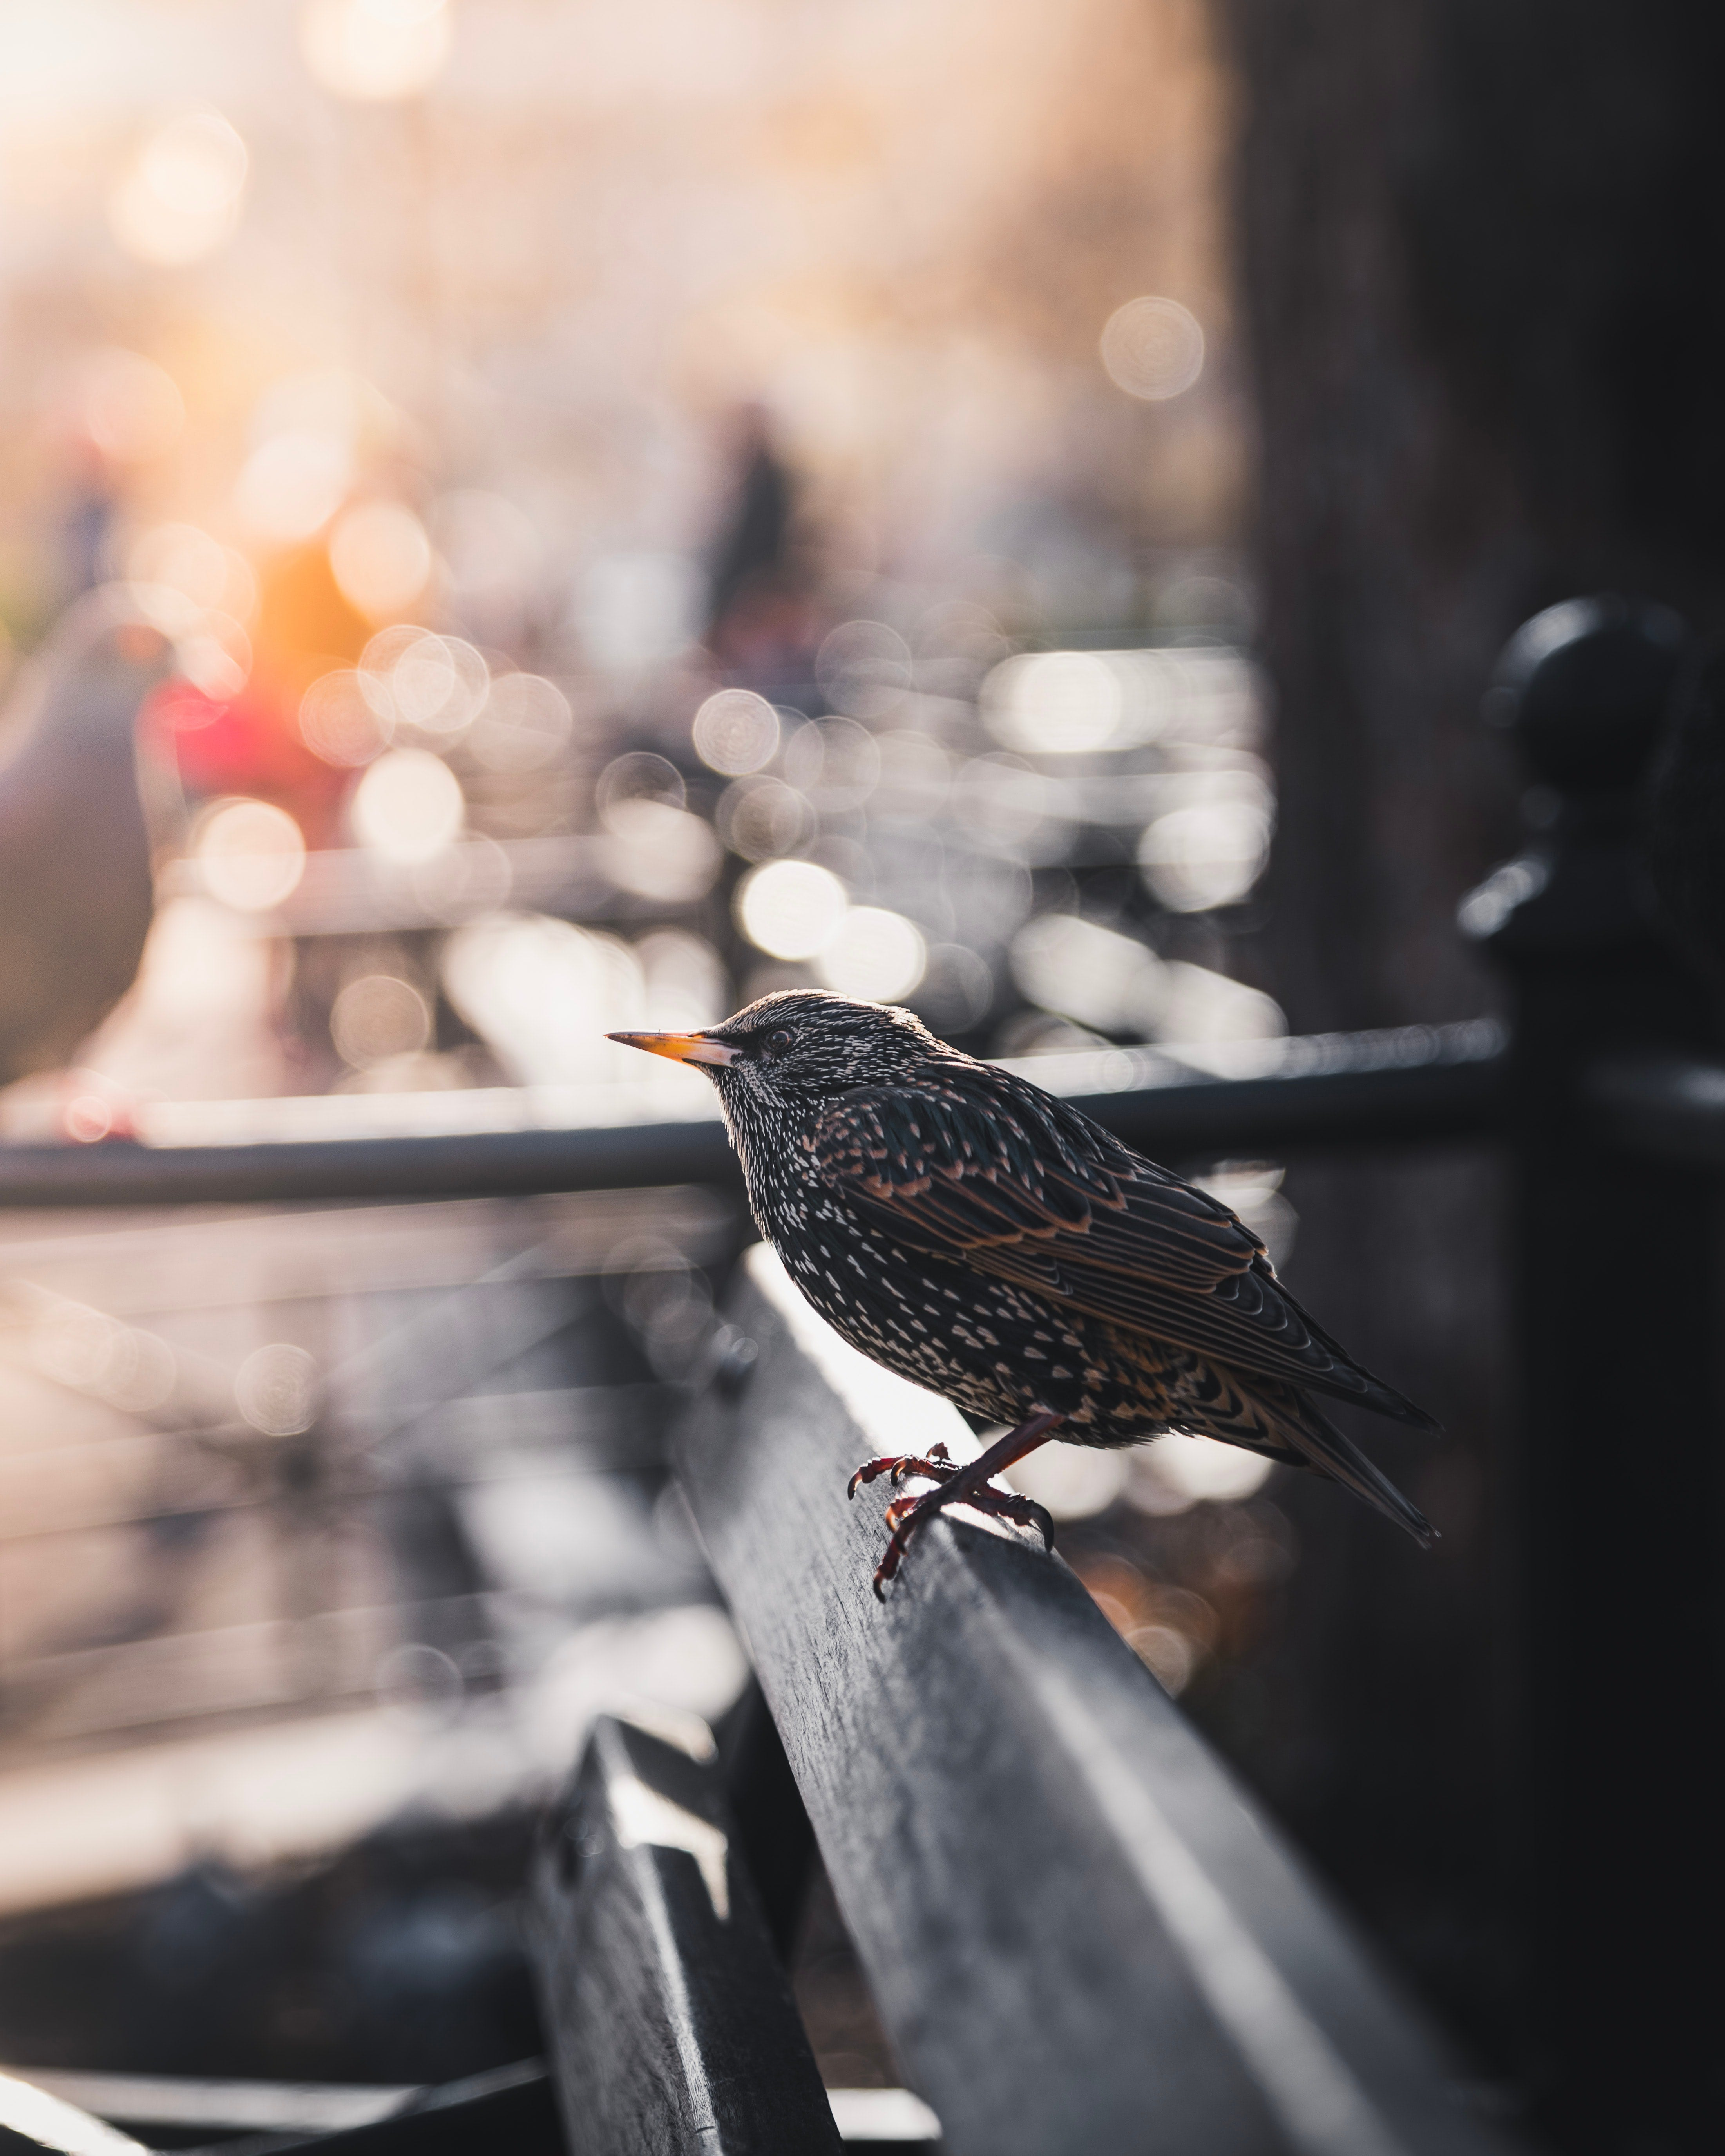 An urban starling looks out over the city